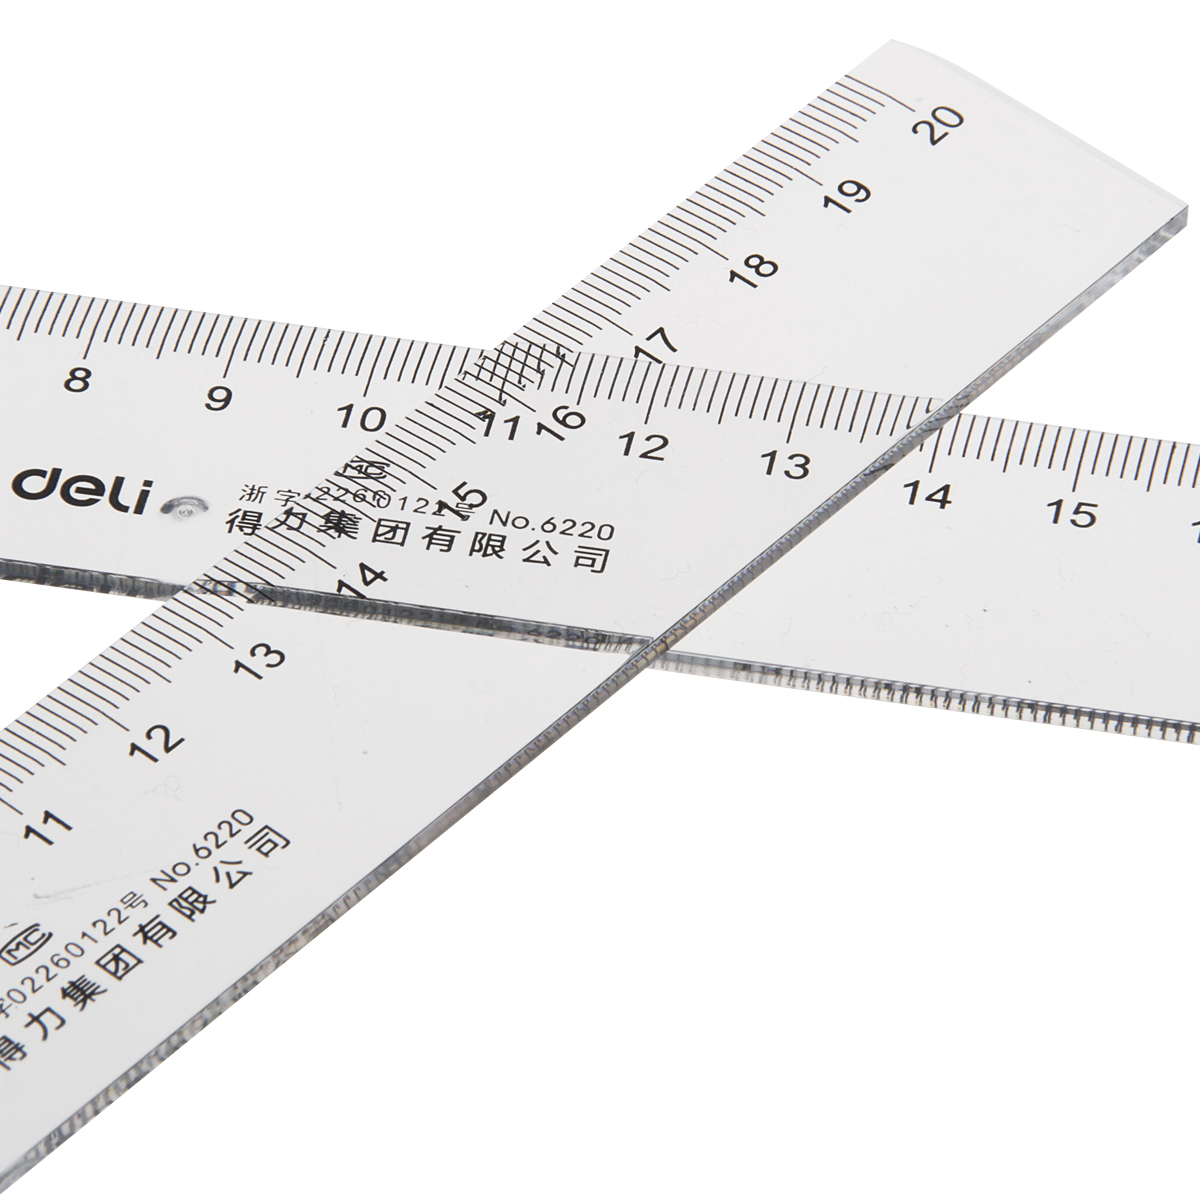 Effective steel ruler plastic ruler soft feet 15 20 30 50cm stainless steel ruler ruler ruler metal ruler